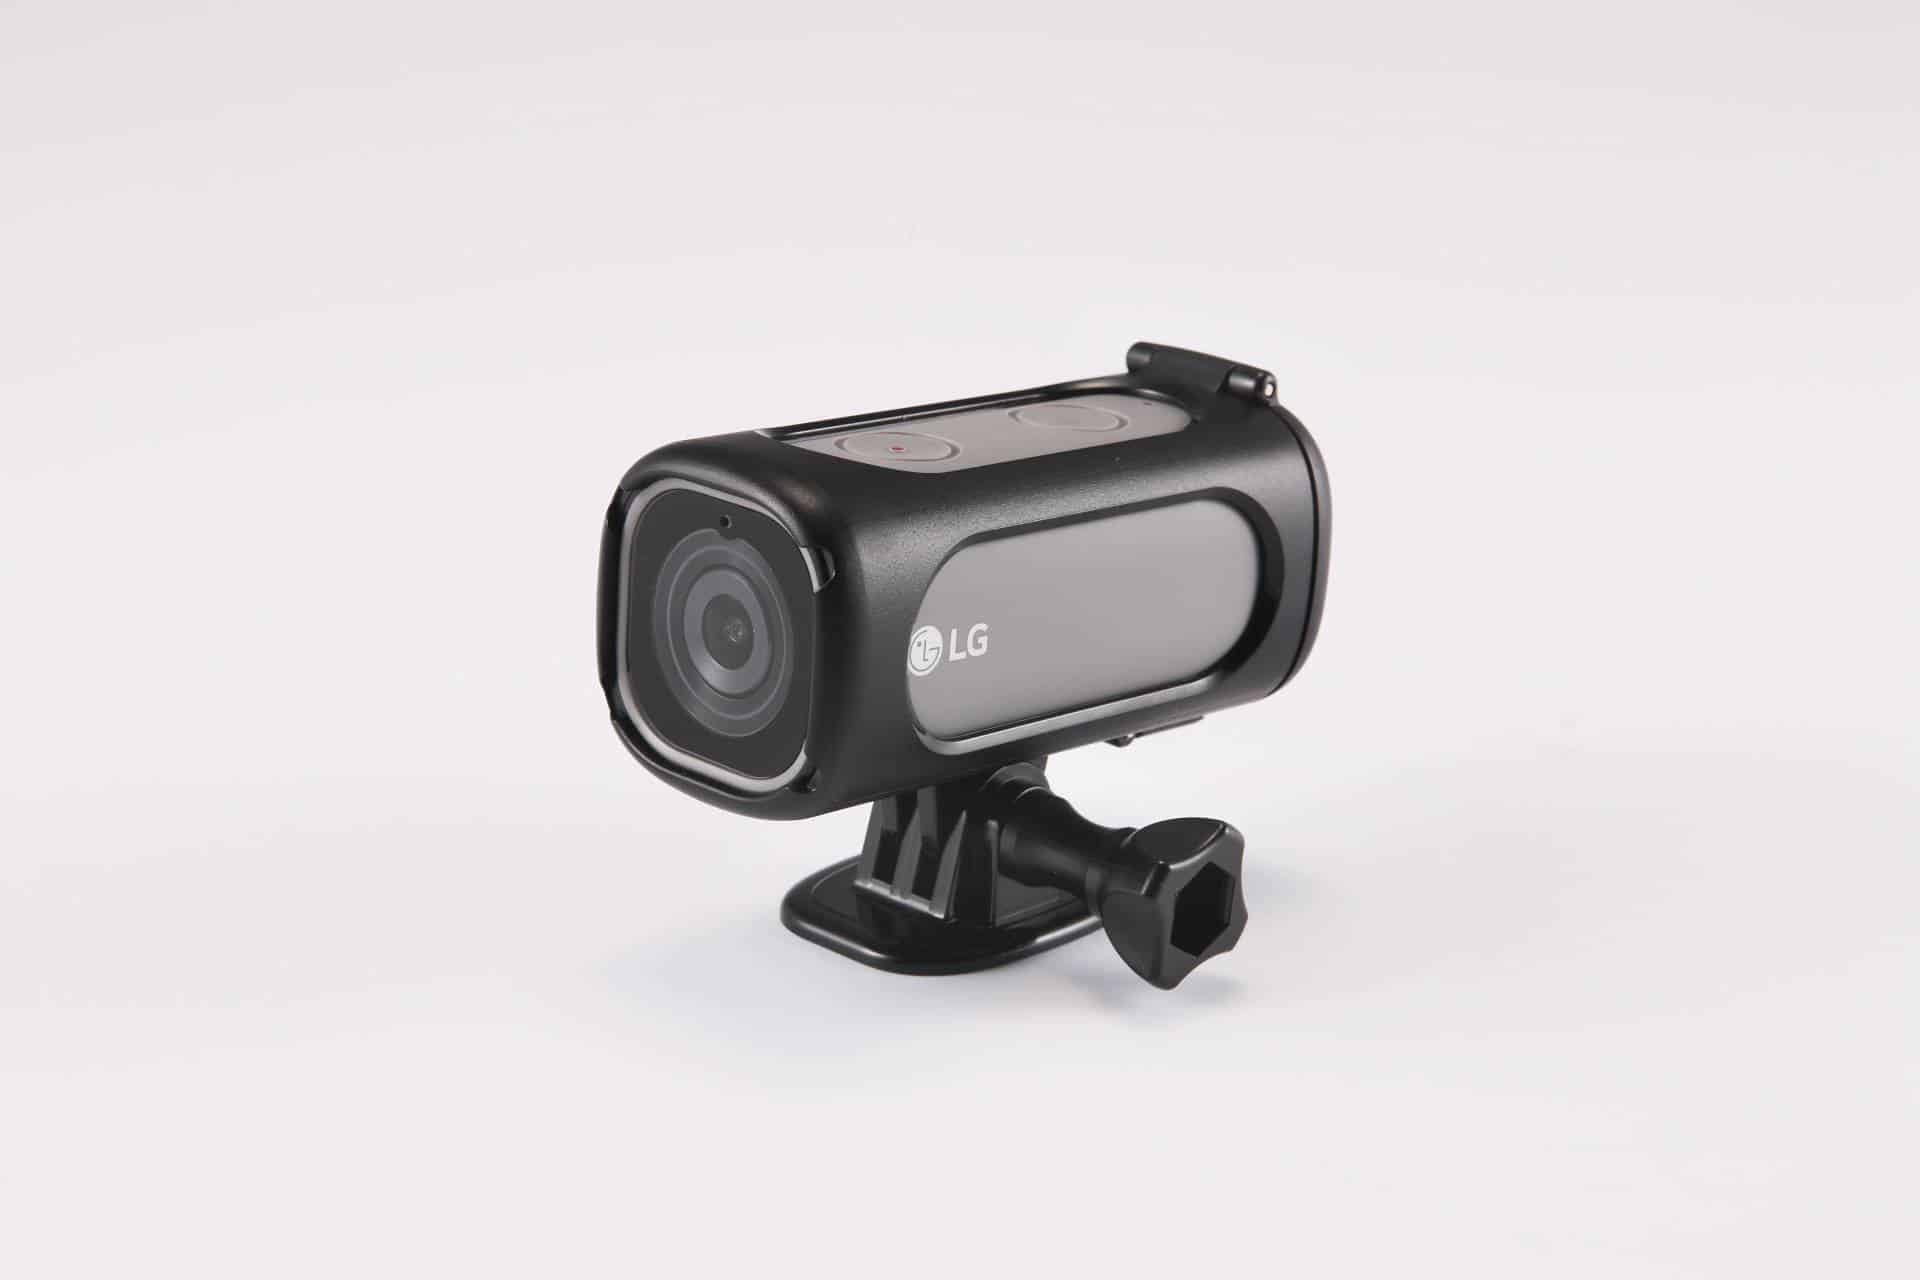 LG Action Cam 3